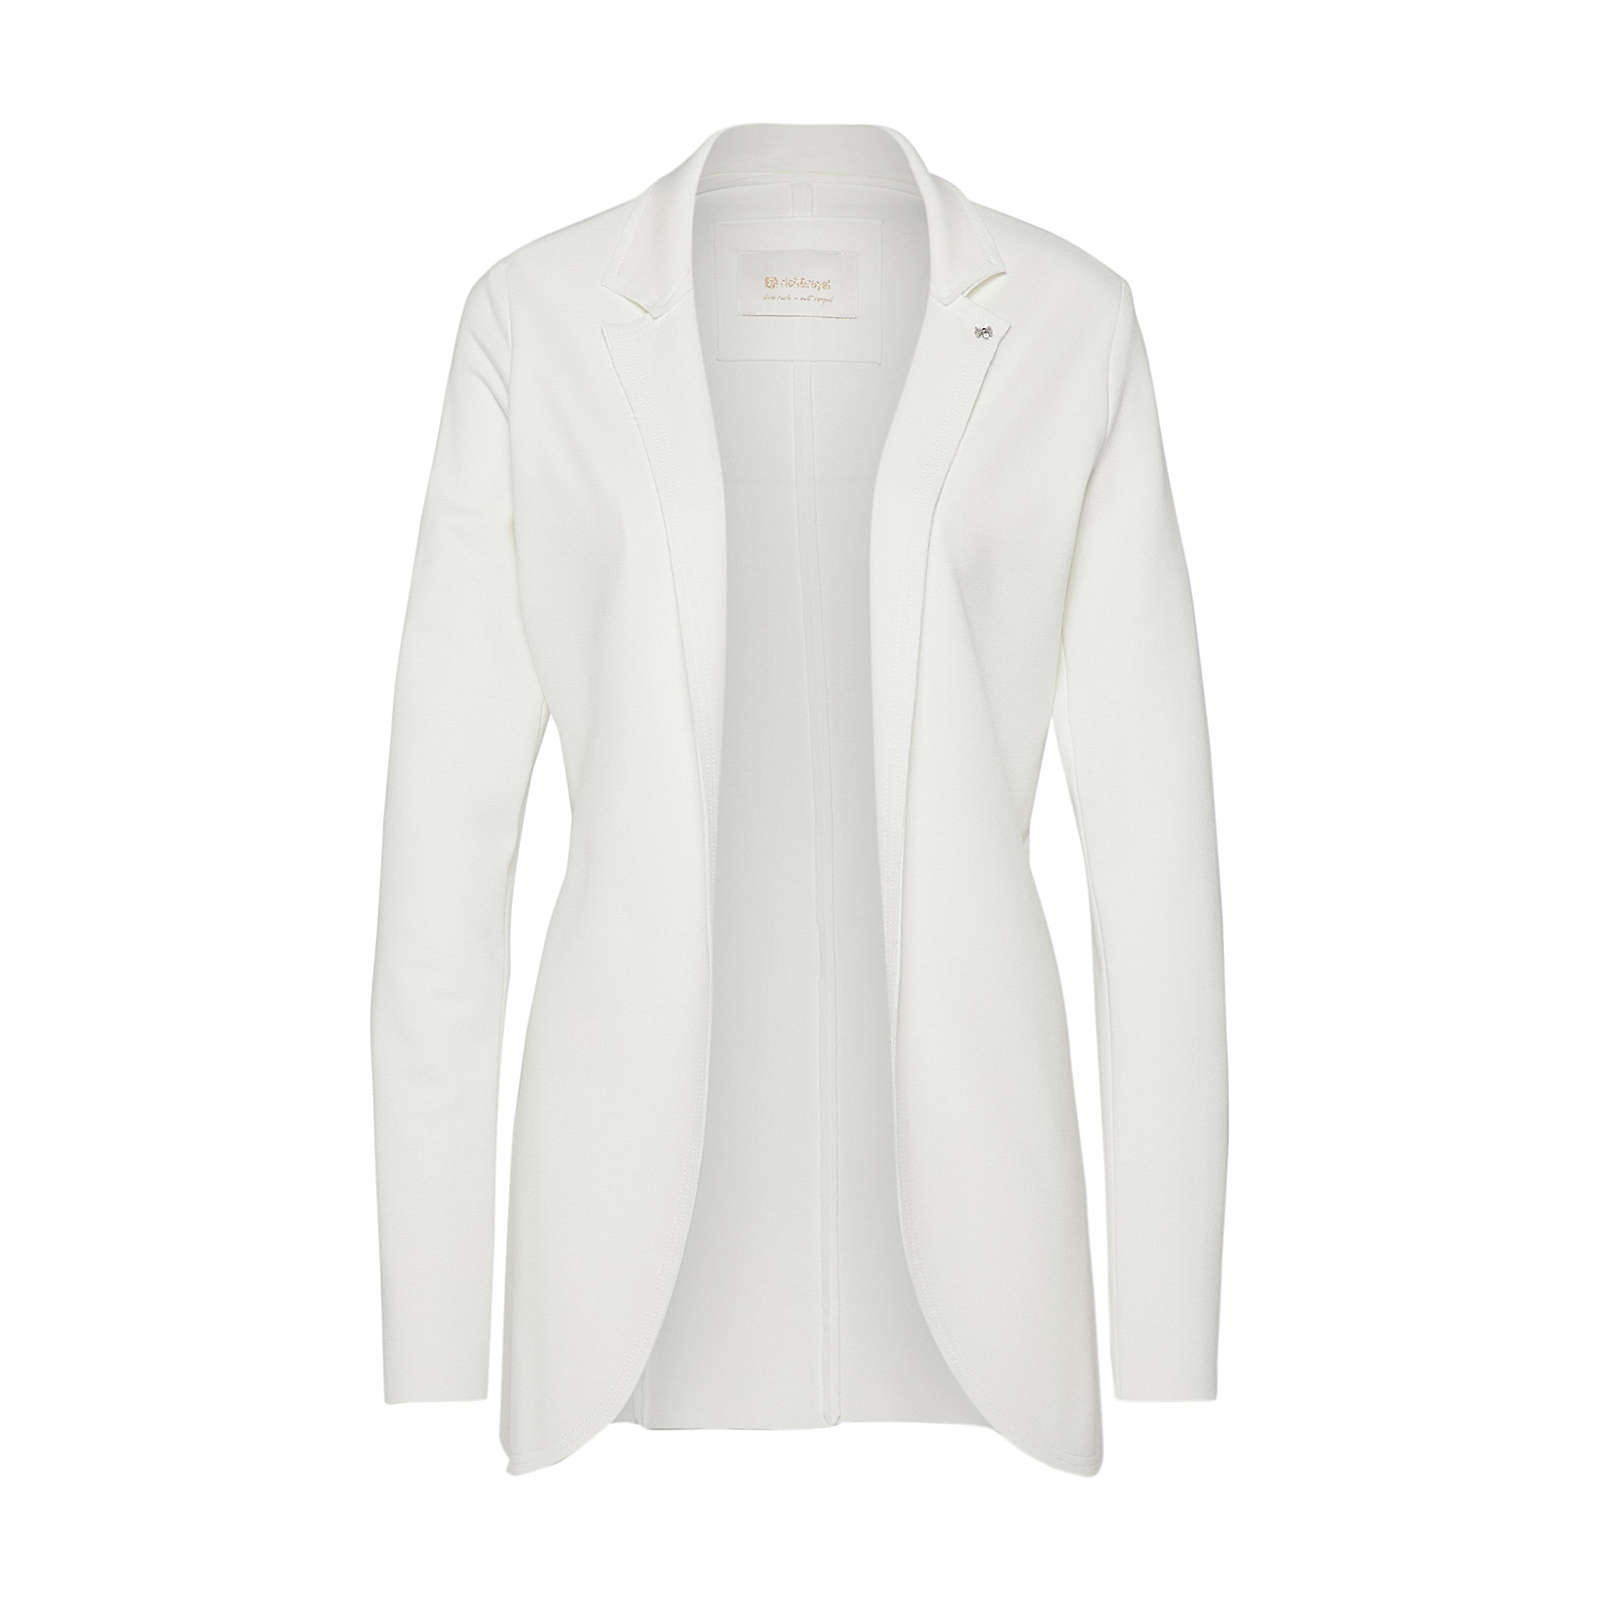 rich&royal Rich & Royal Blazer Sweatblazer offwhite Damen Gr. 40